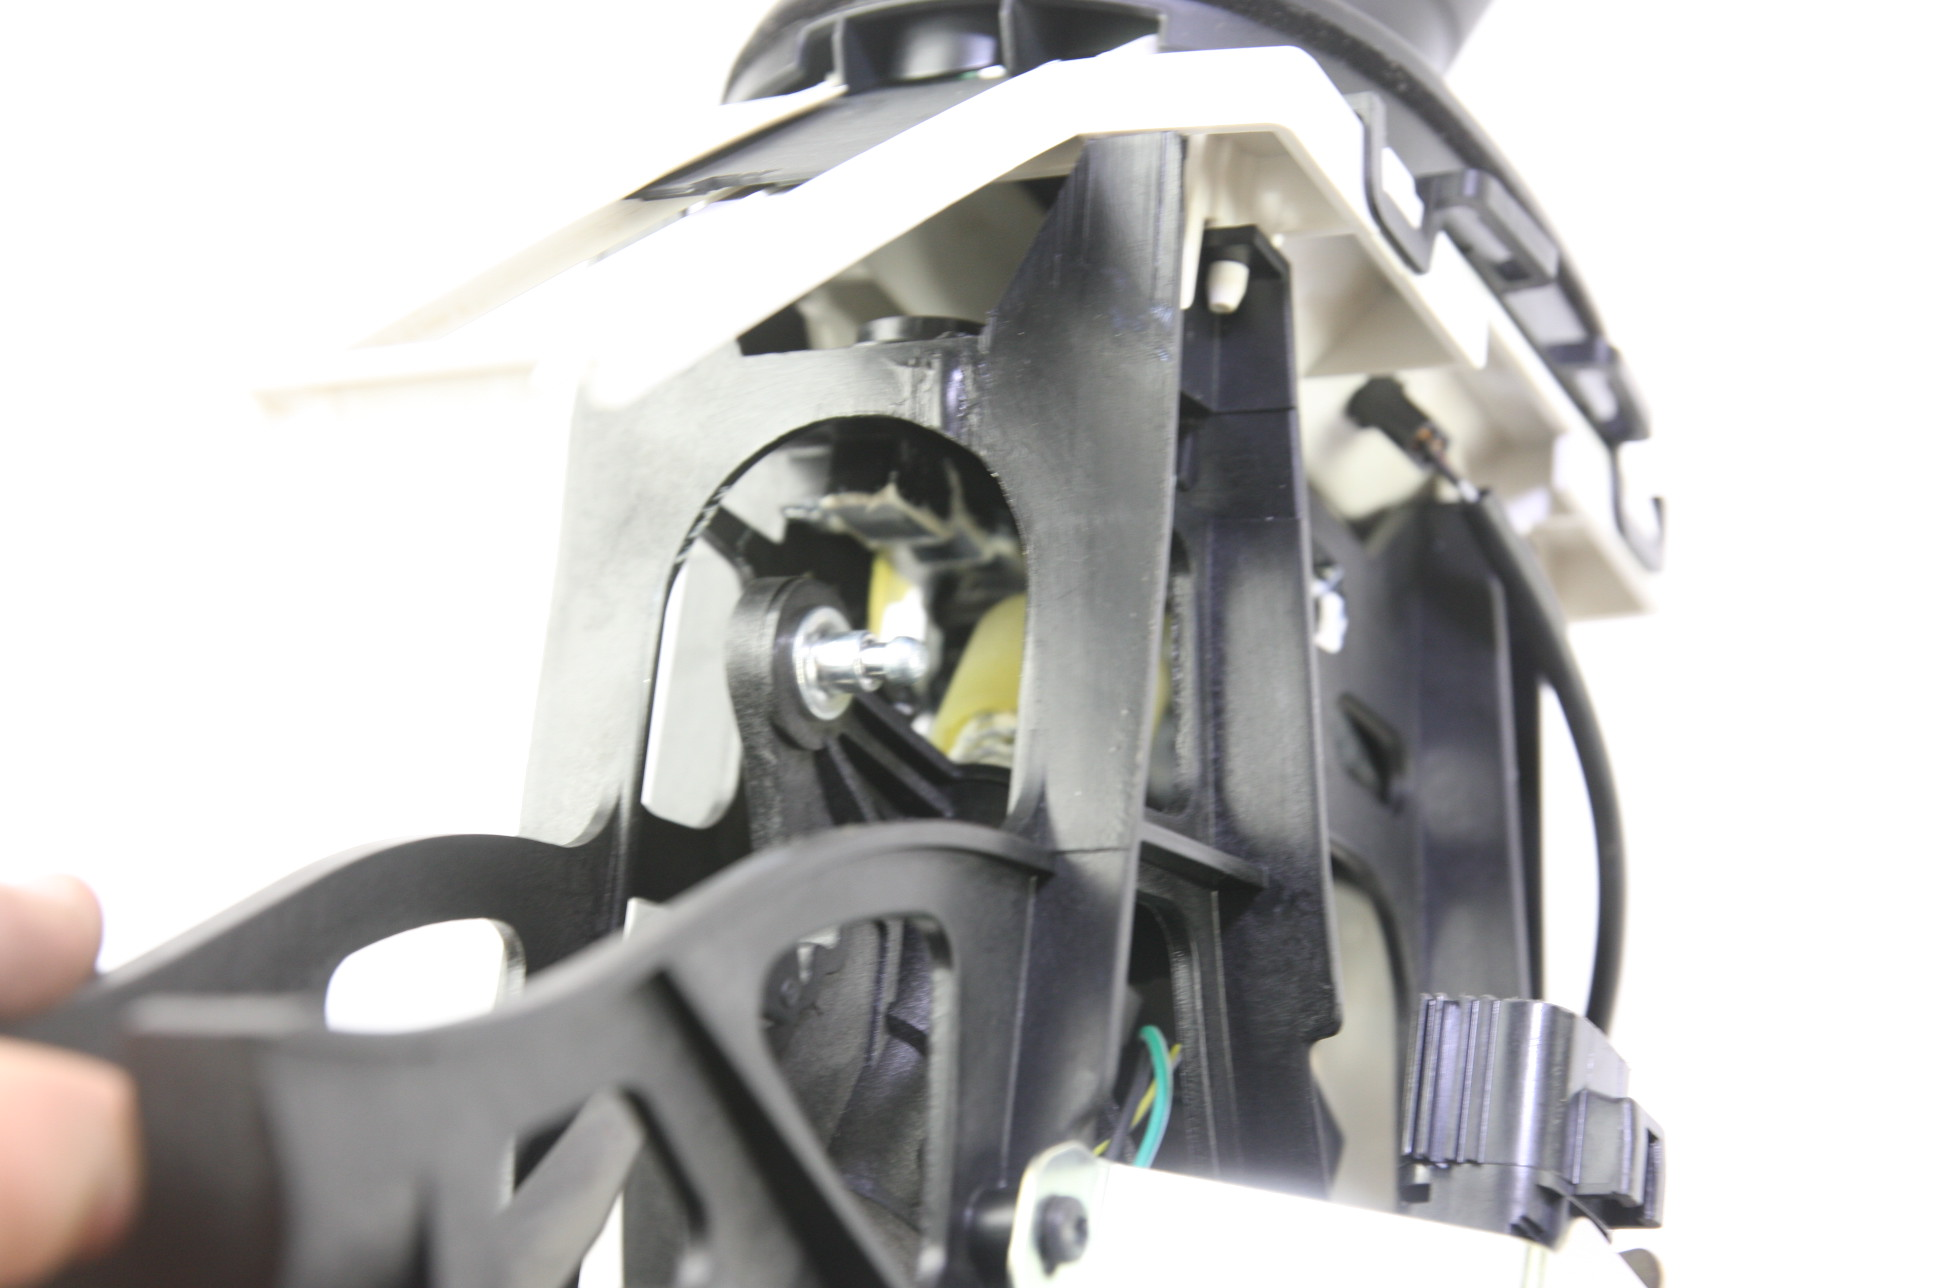 *New OEM 5M6Z7210C Ford 05-07 Escape Transmission Gear Shifter Housing Assy - image 8